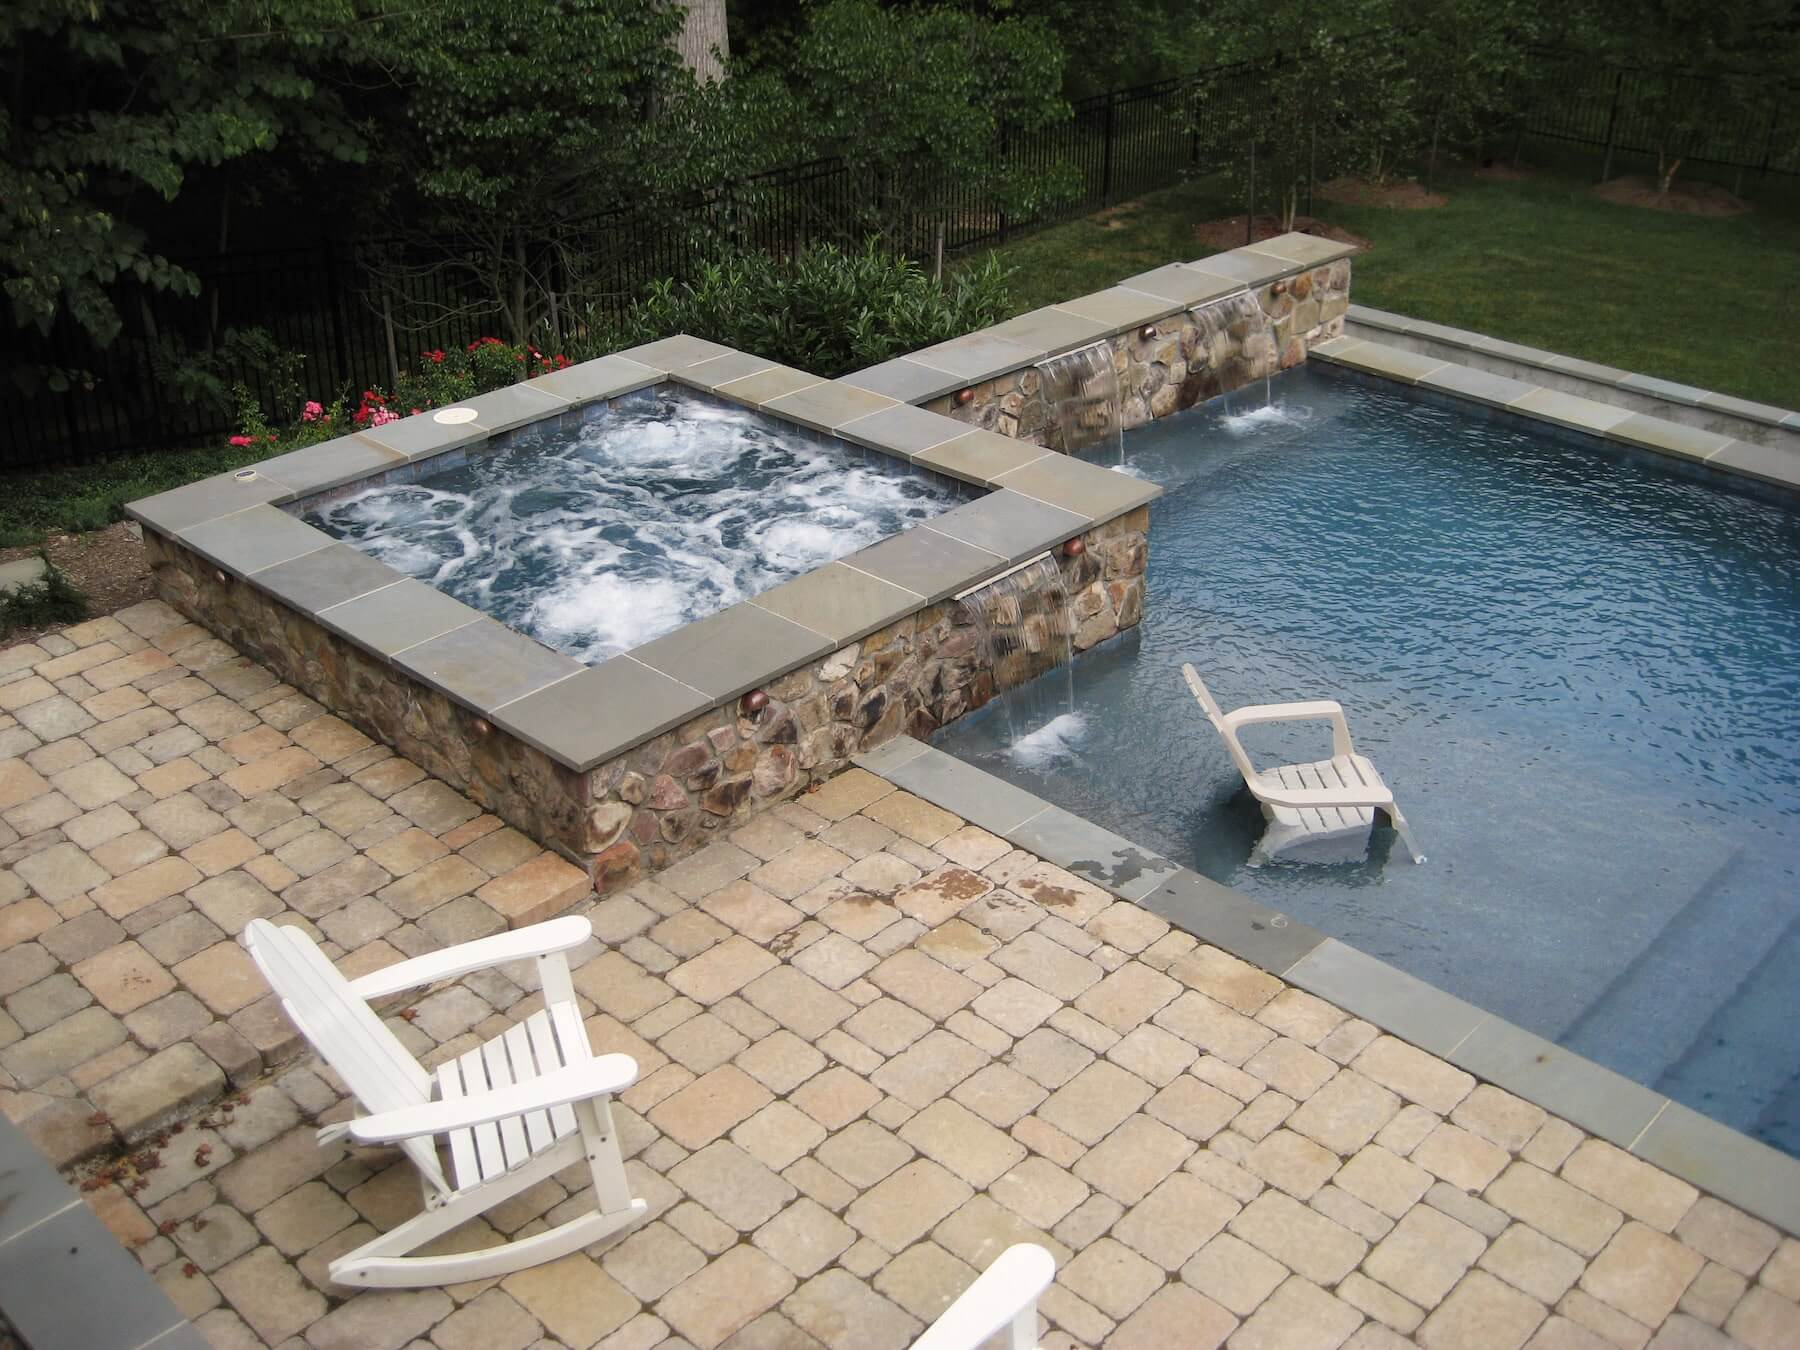 Spa With Pool And Paver Patio